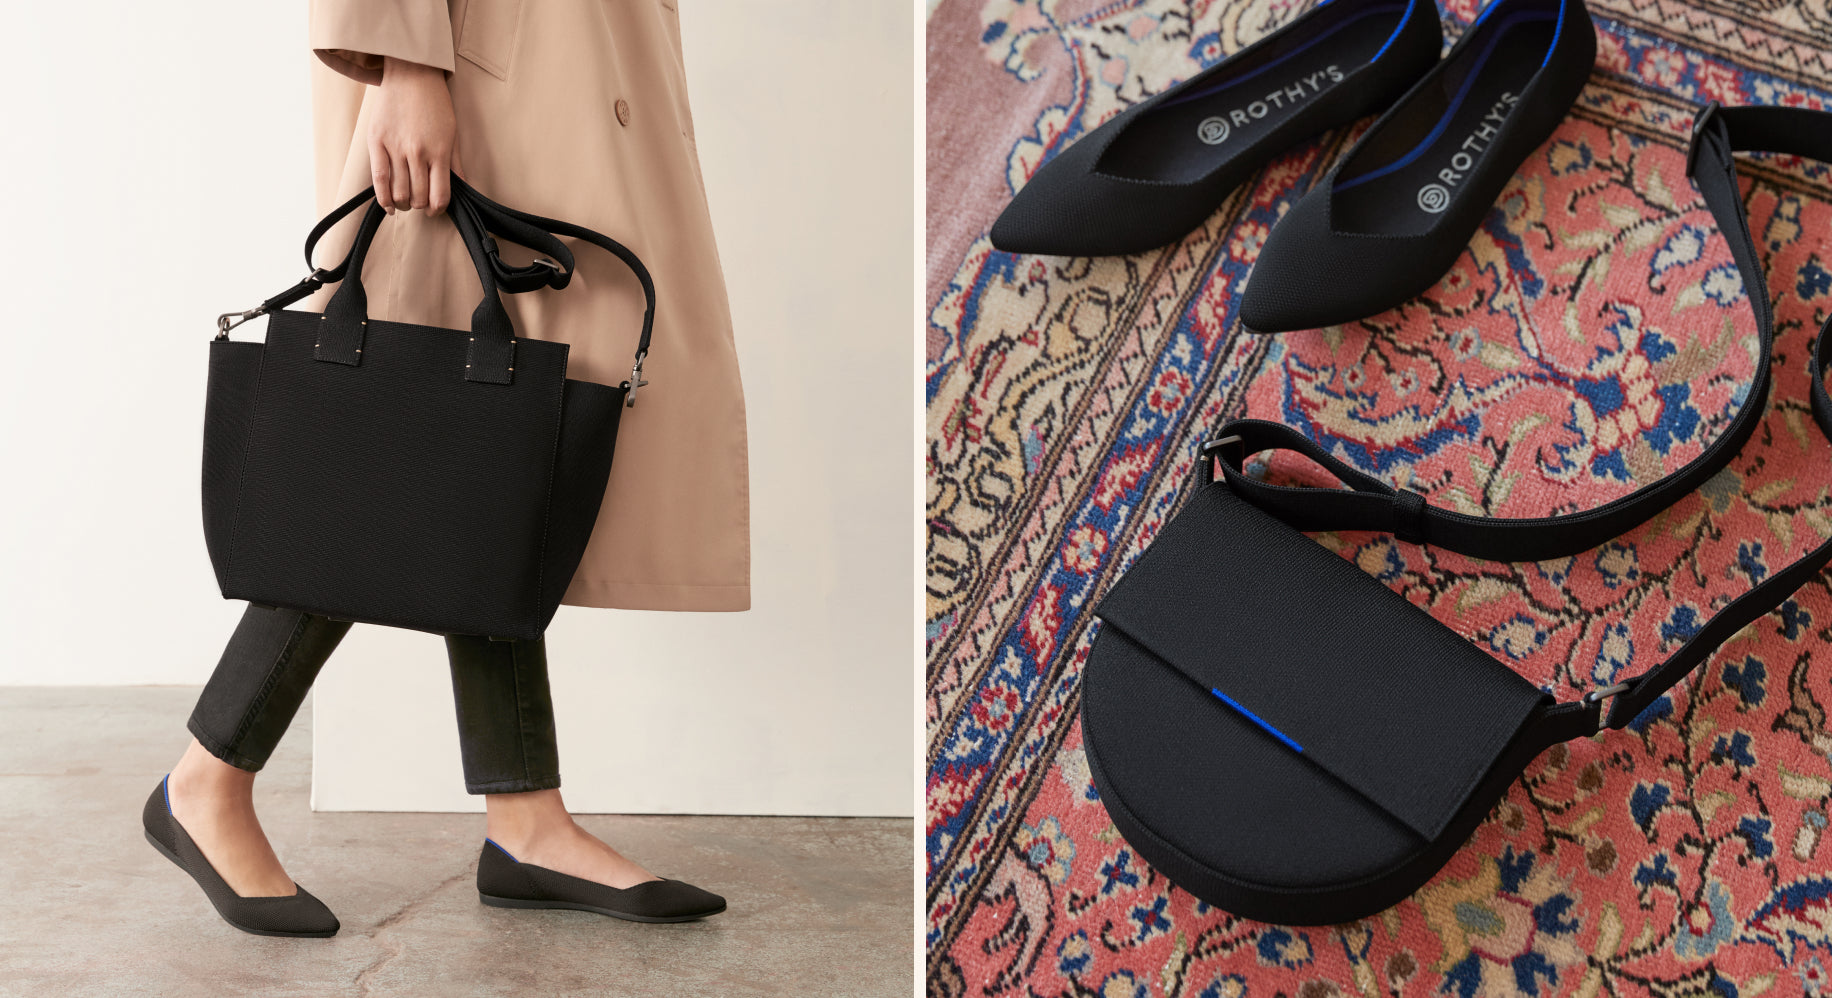 Model holding The Handbag in Total Black and wearing The Point in Black.